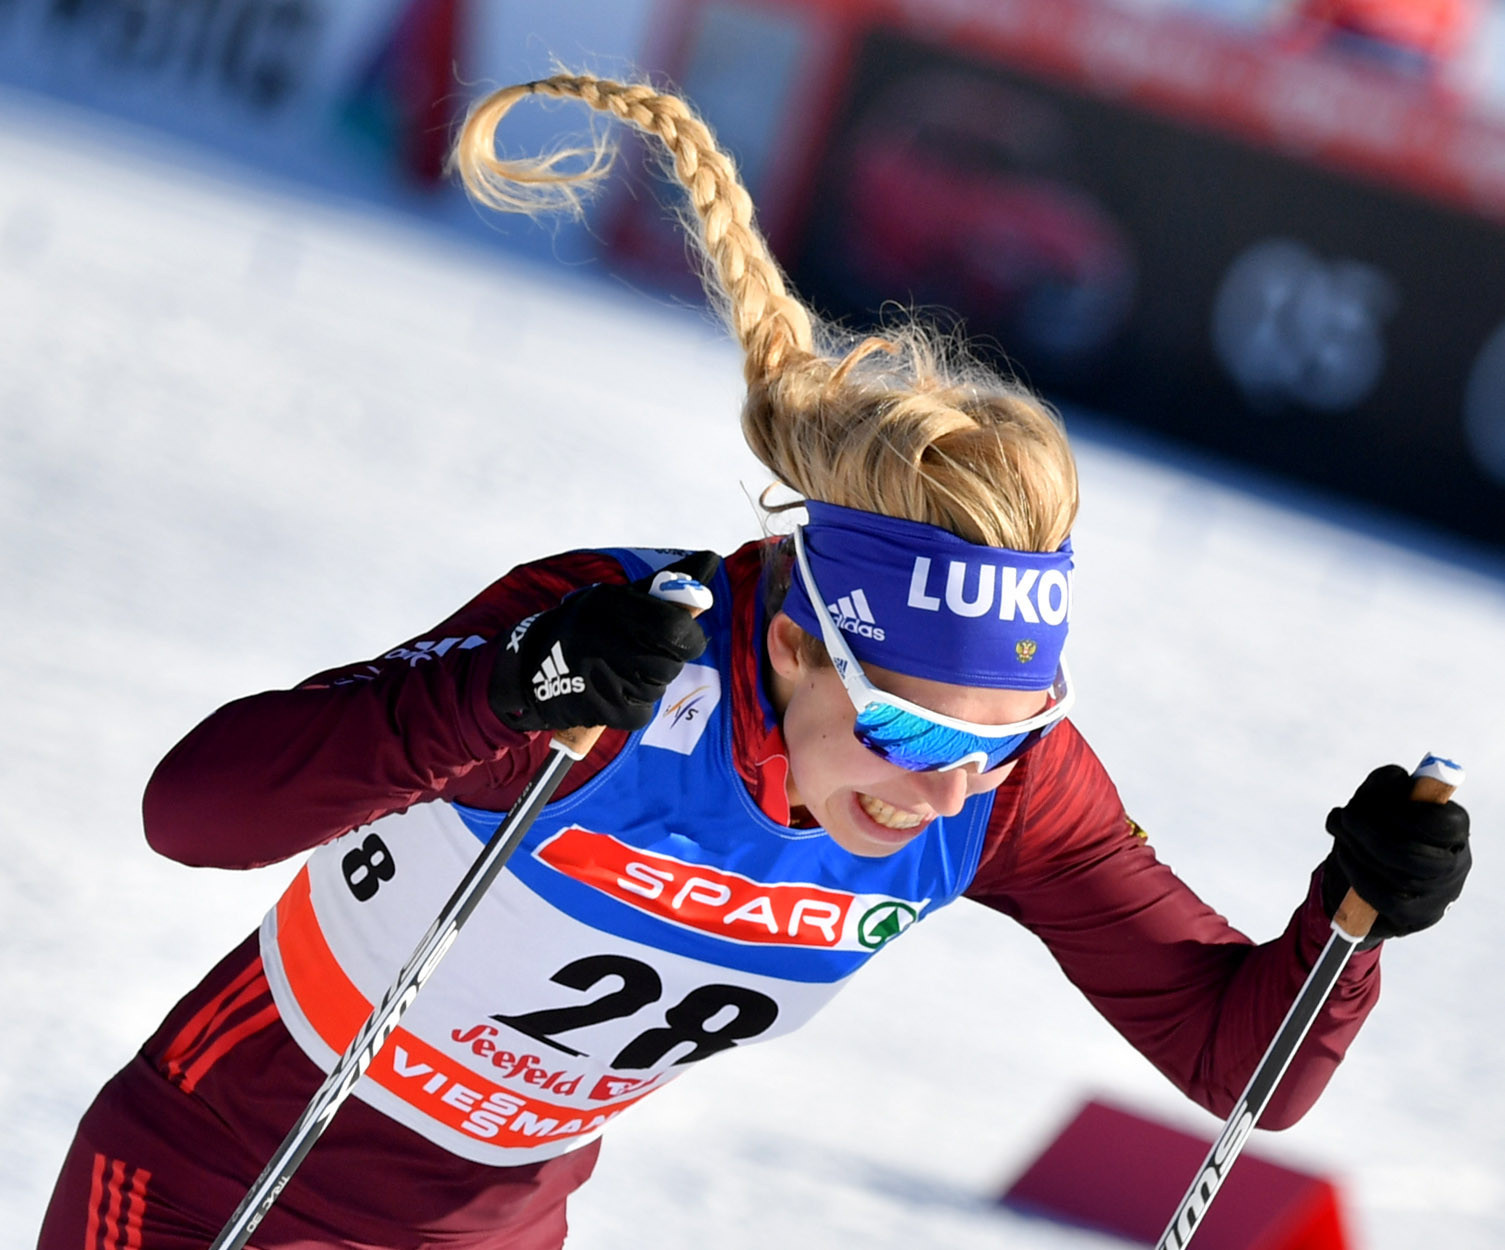 Russian cross-country skier set to have four-year ban halved because it is against rules